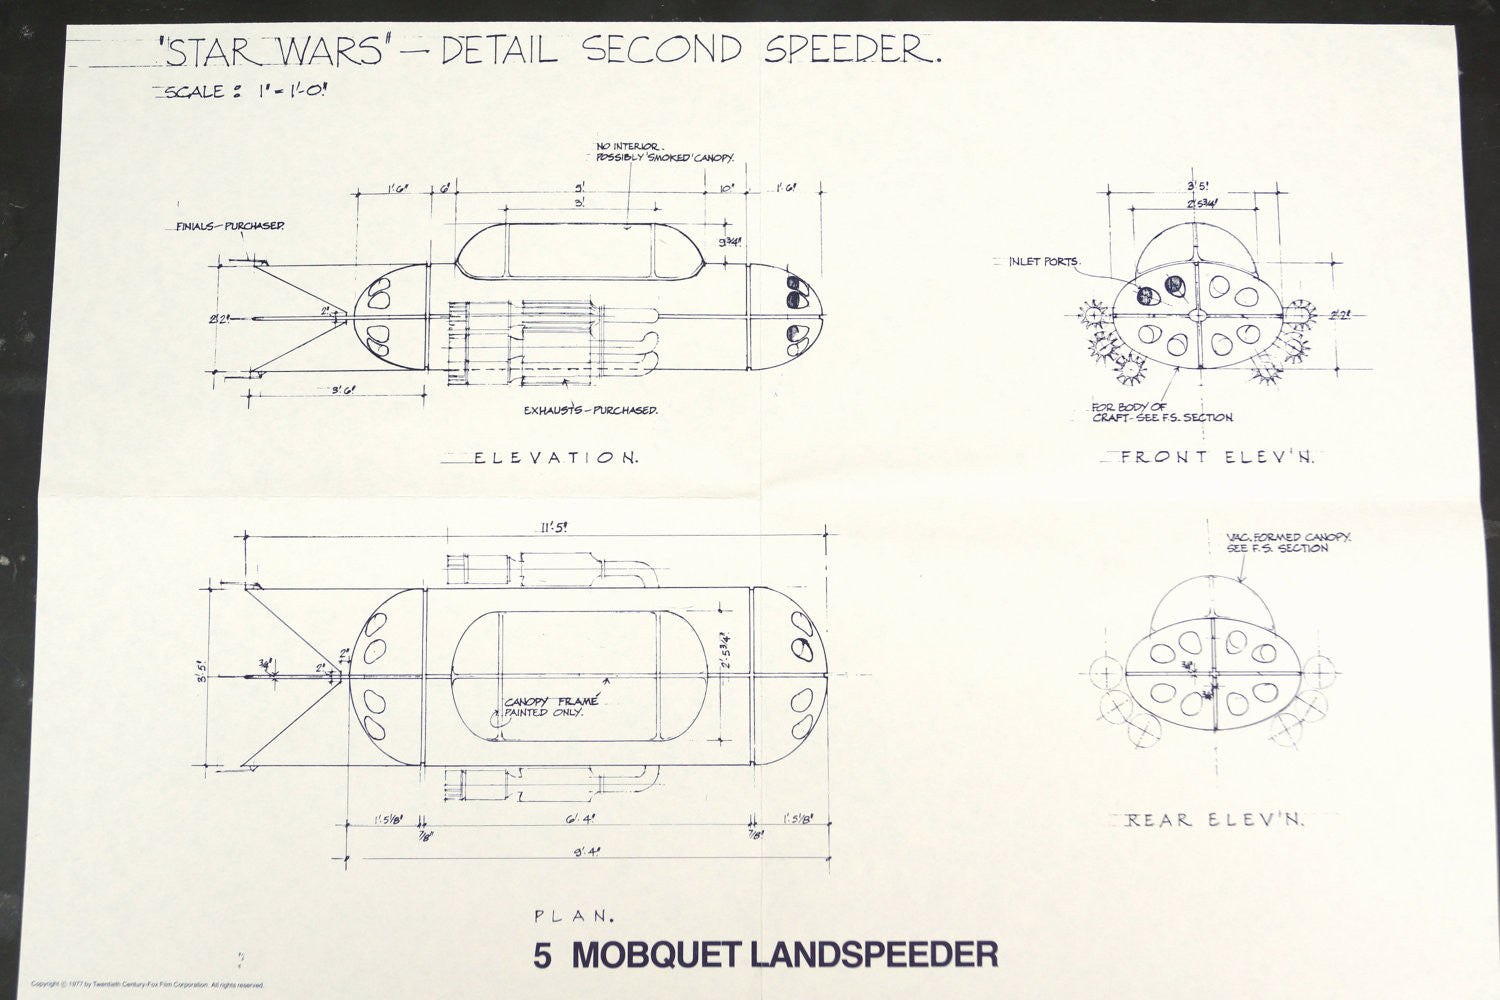 Iets Nieuws Vintage Star Wars Blueprint for Mobquet Landspeeder (c.1977) N5 #UV22